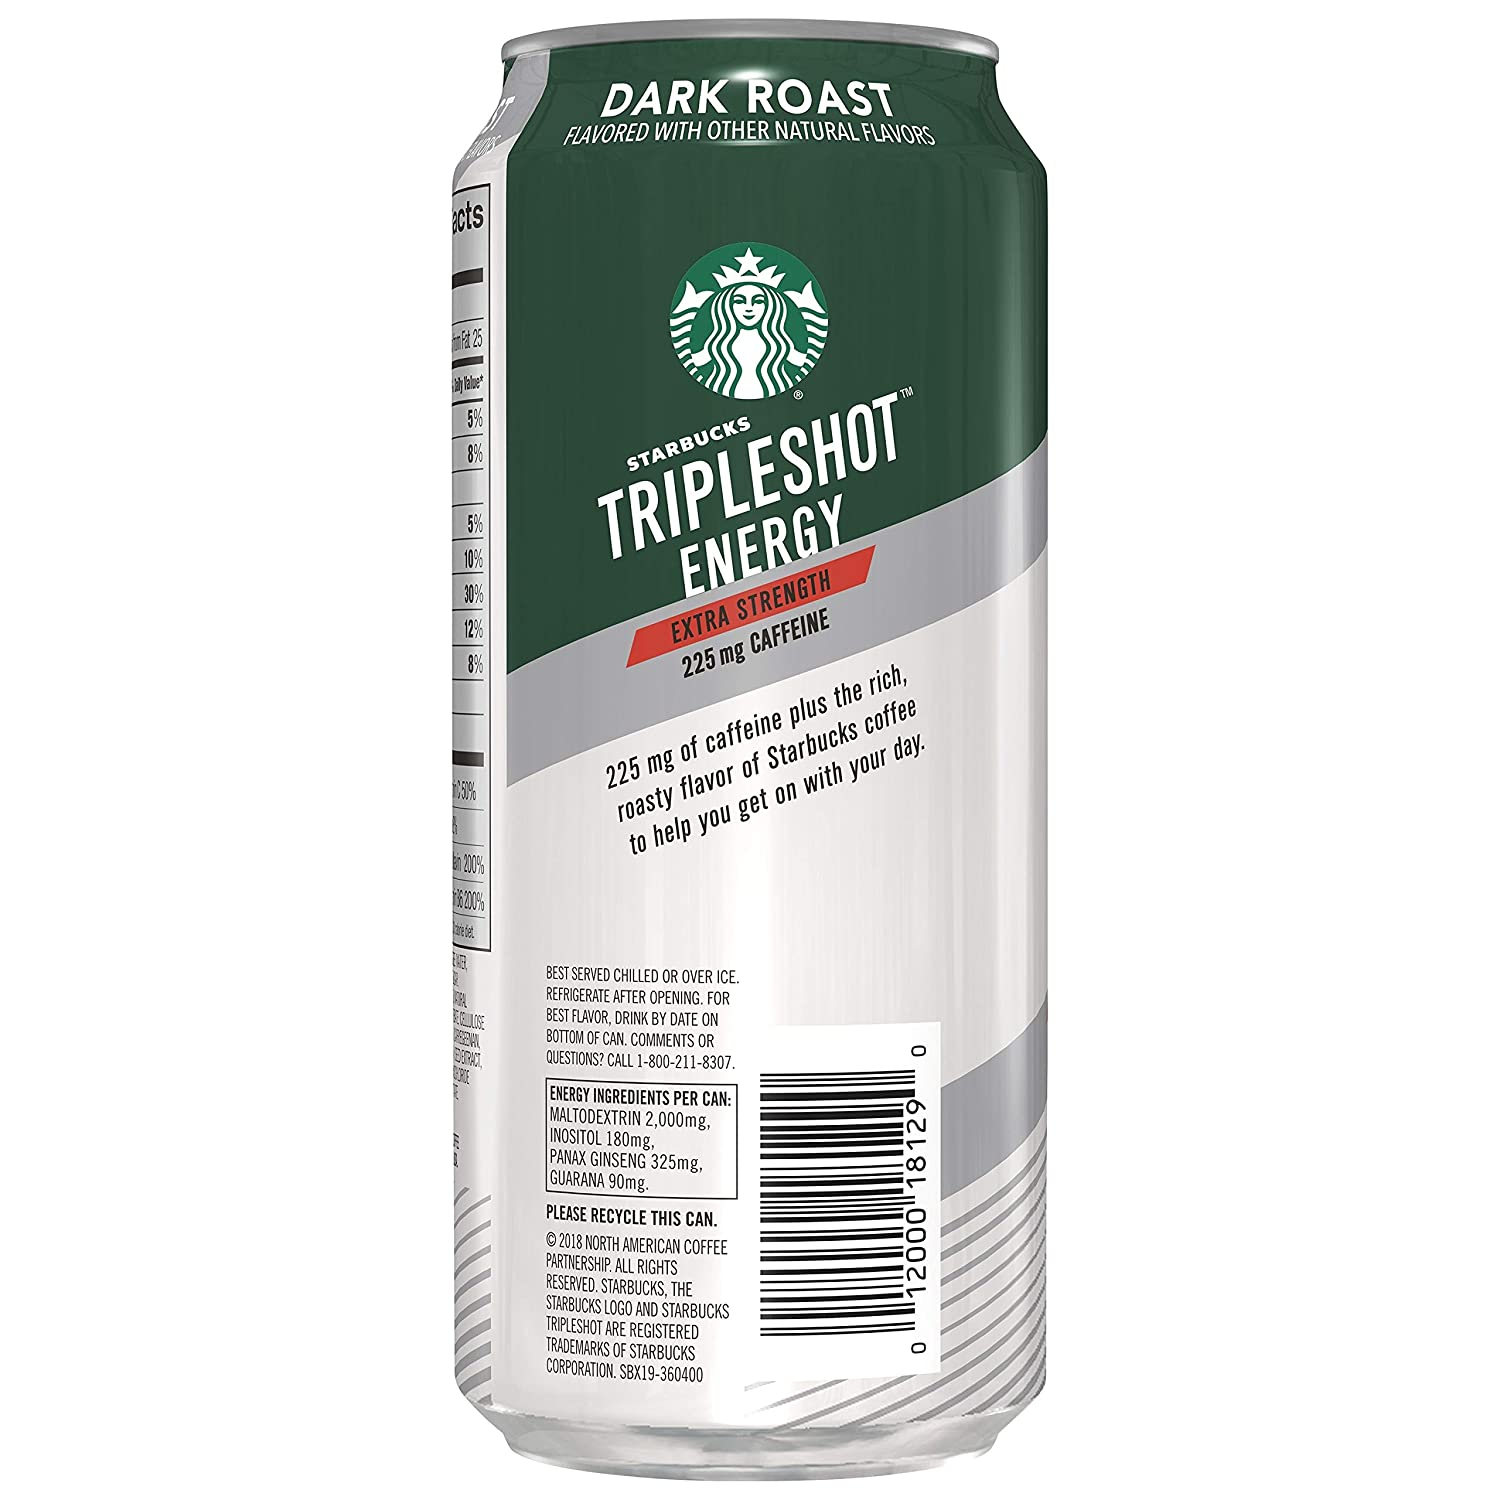 Starbucks Tripleshot Energy Extra Strength, Caffe Mocha, 15oz Cans (12 Pack) : Grocery & Gourmet Food